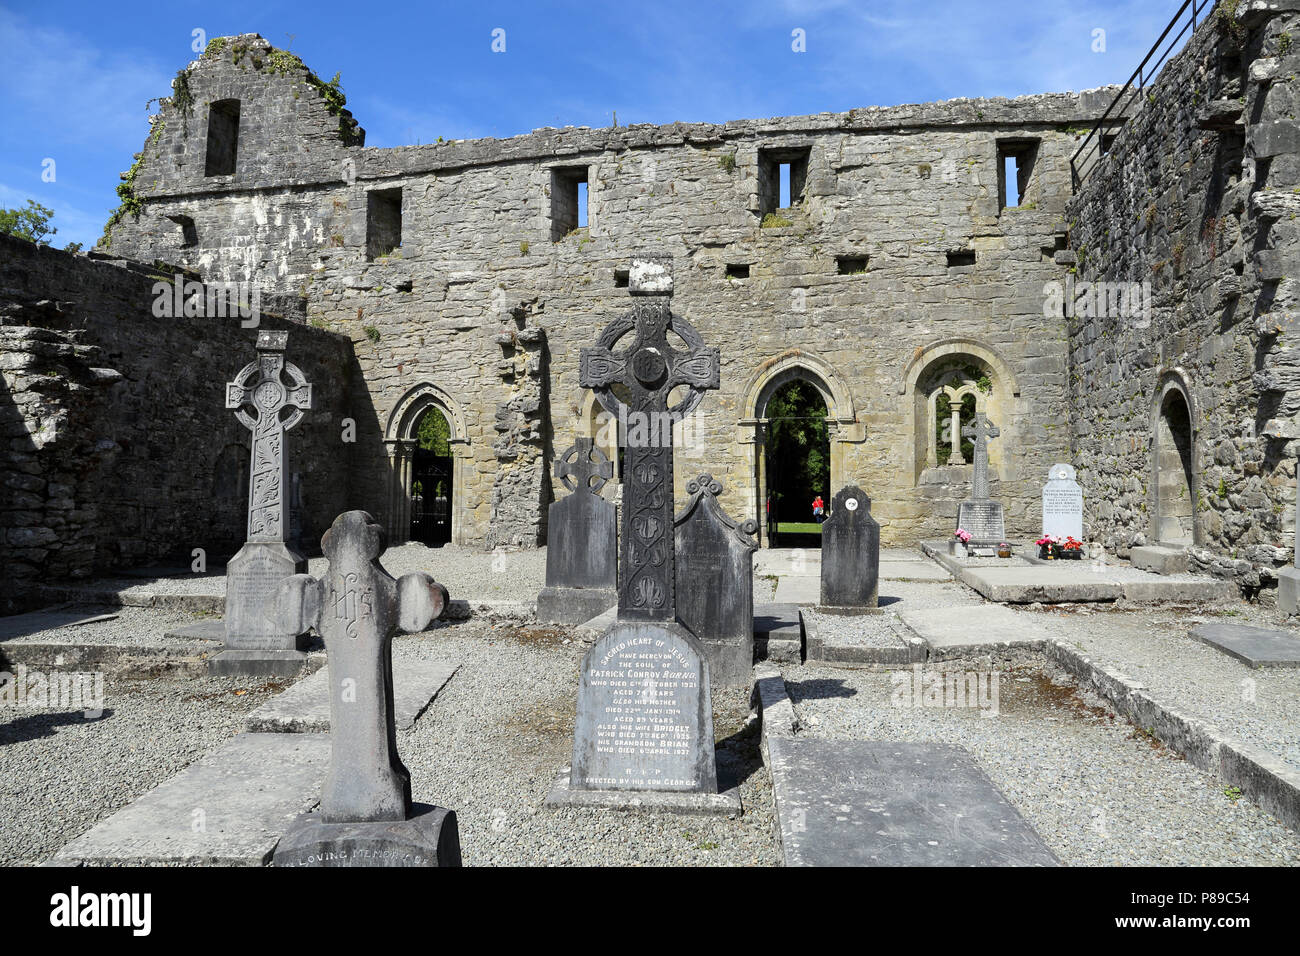 Cong Abbey is a historic site located at Cong, on the borders of counties Galway and Mayo, in Ireland's province of Connacht. The ruins of the former  - Stock Image